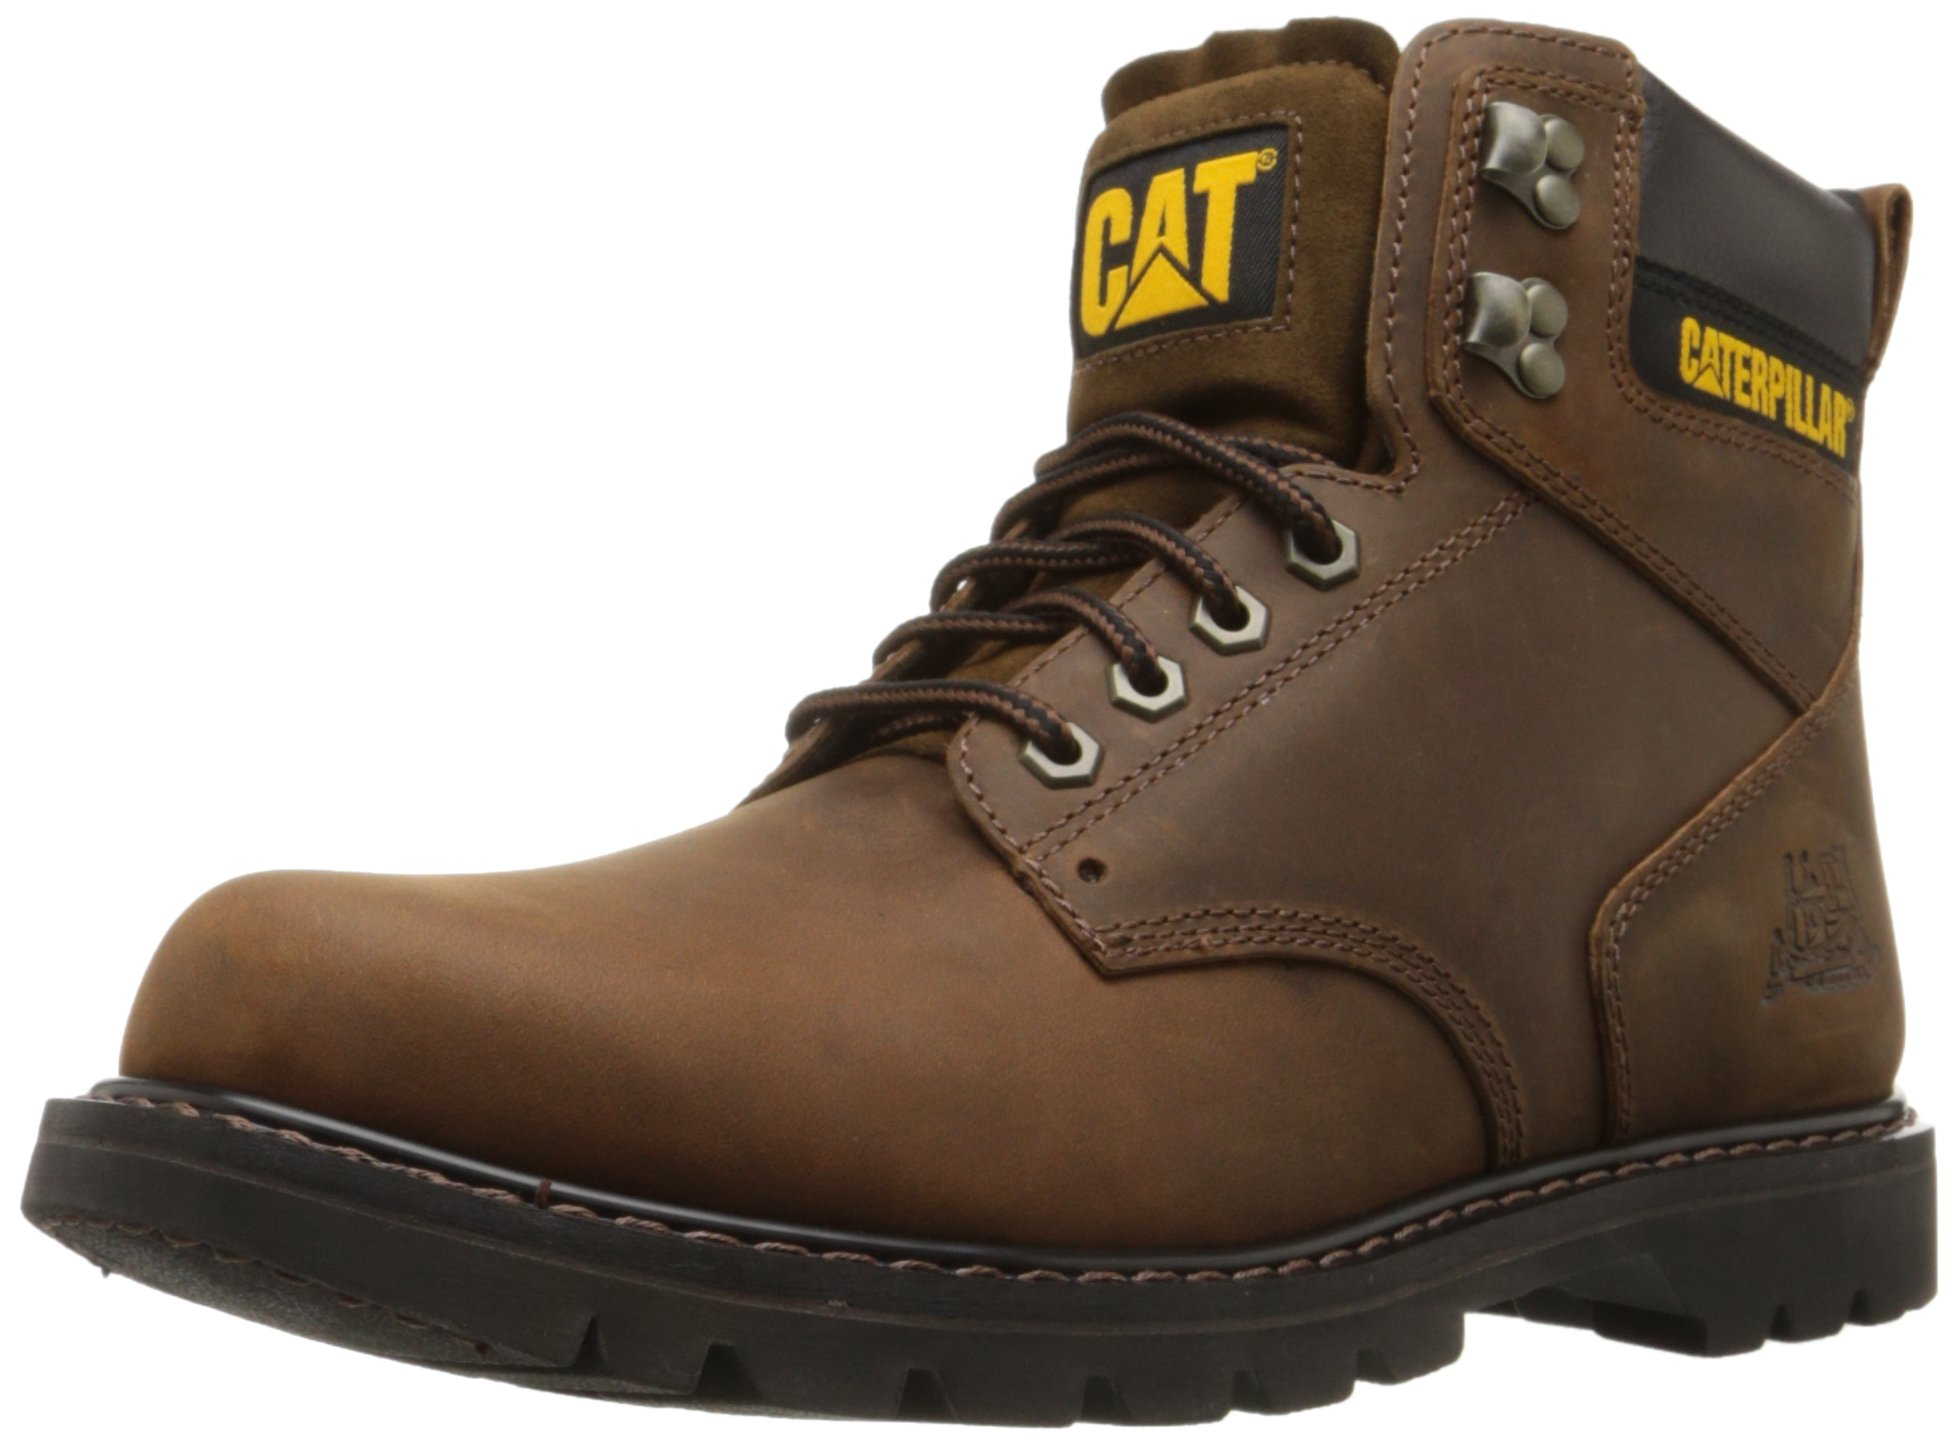 Caterpillar Men's Second Shift Work Boot,Dark Brown,7 M US